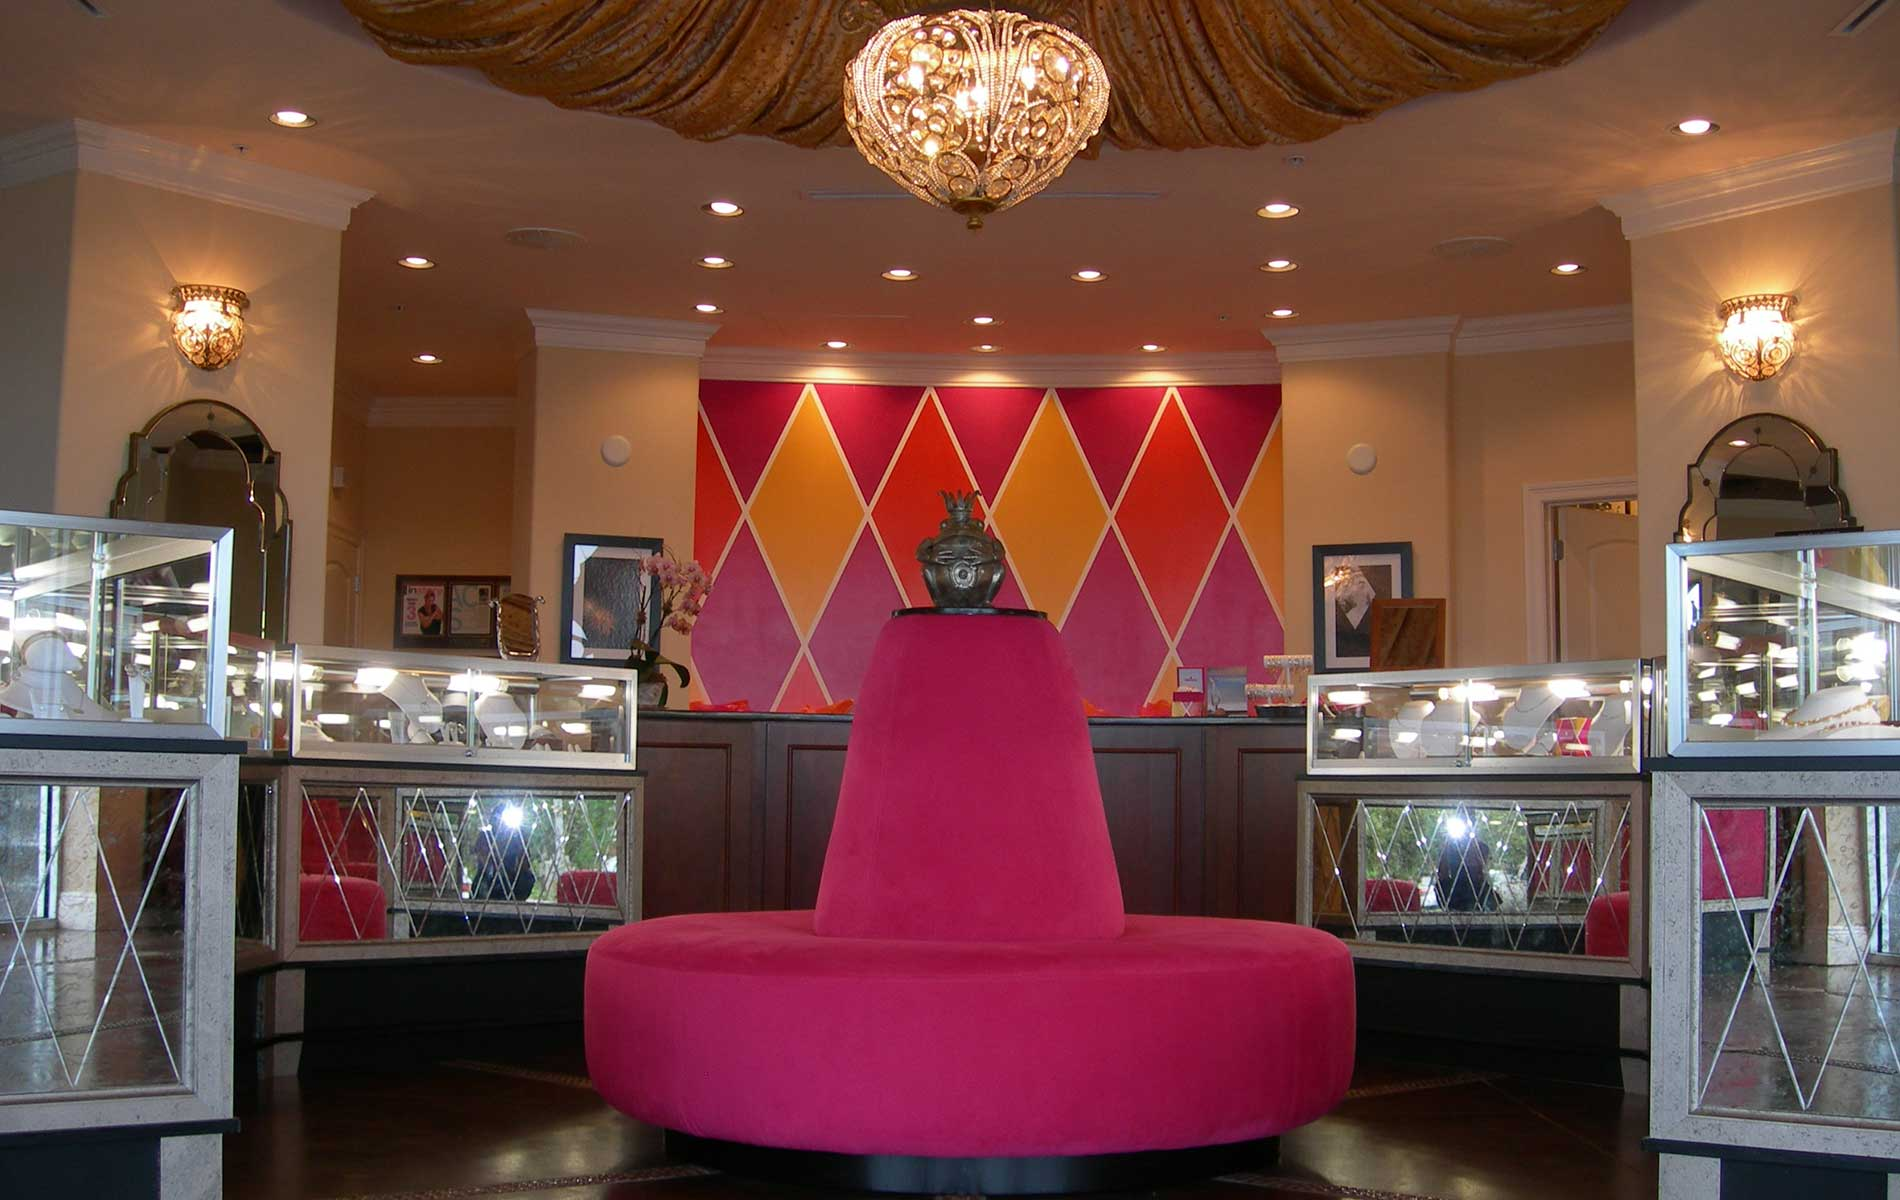 Destin Jewelers interior design by Gerald Burwell